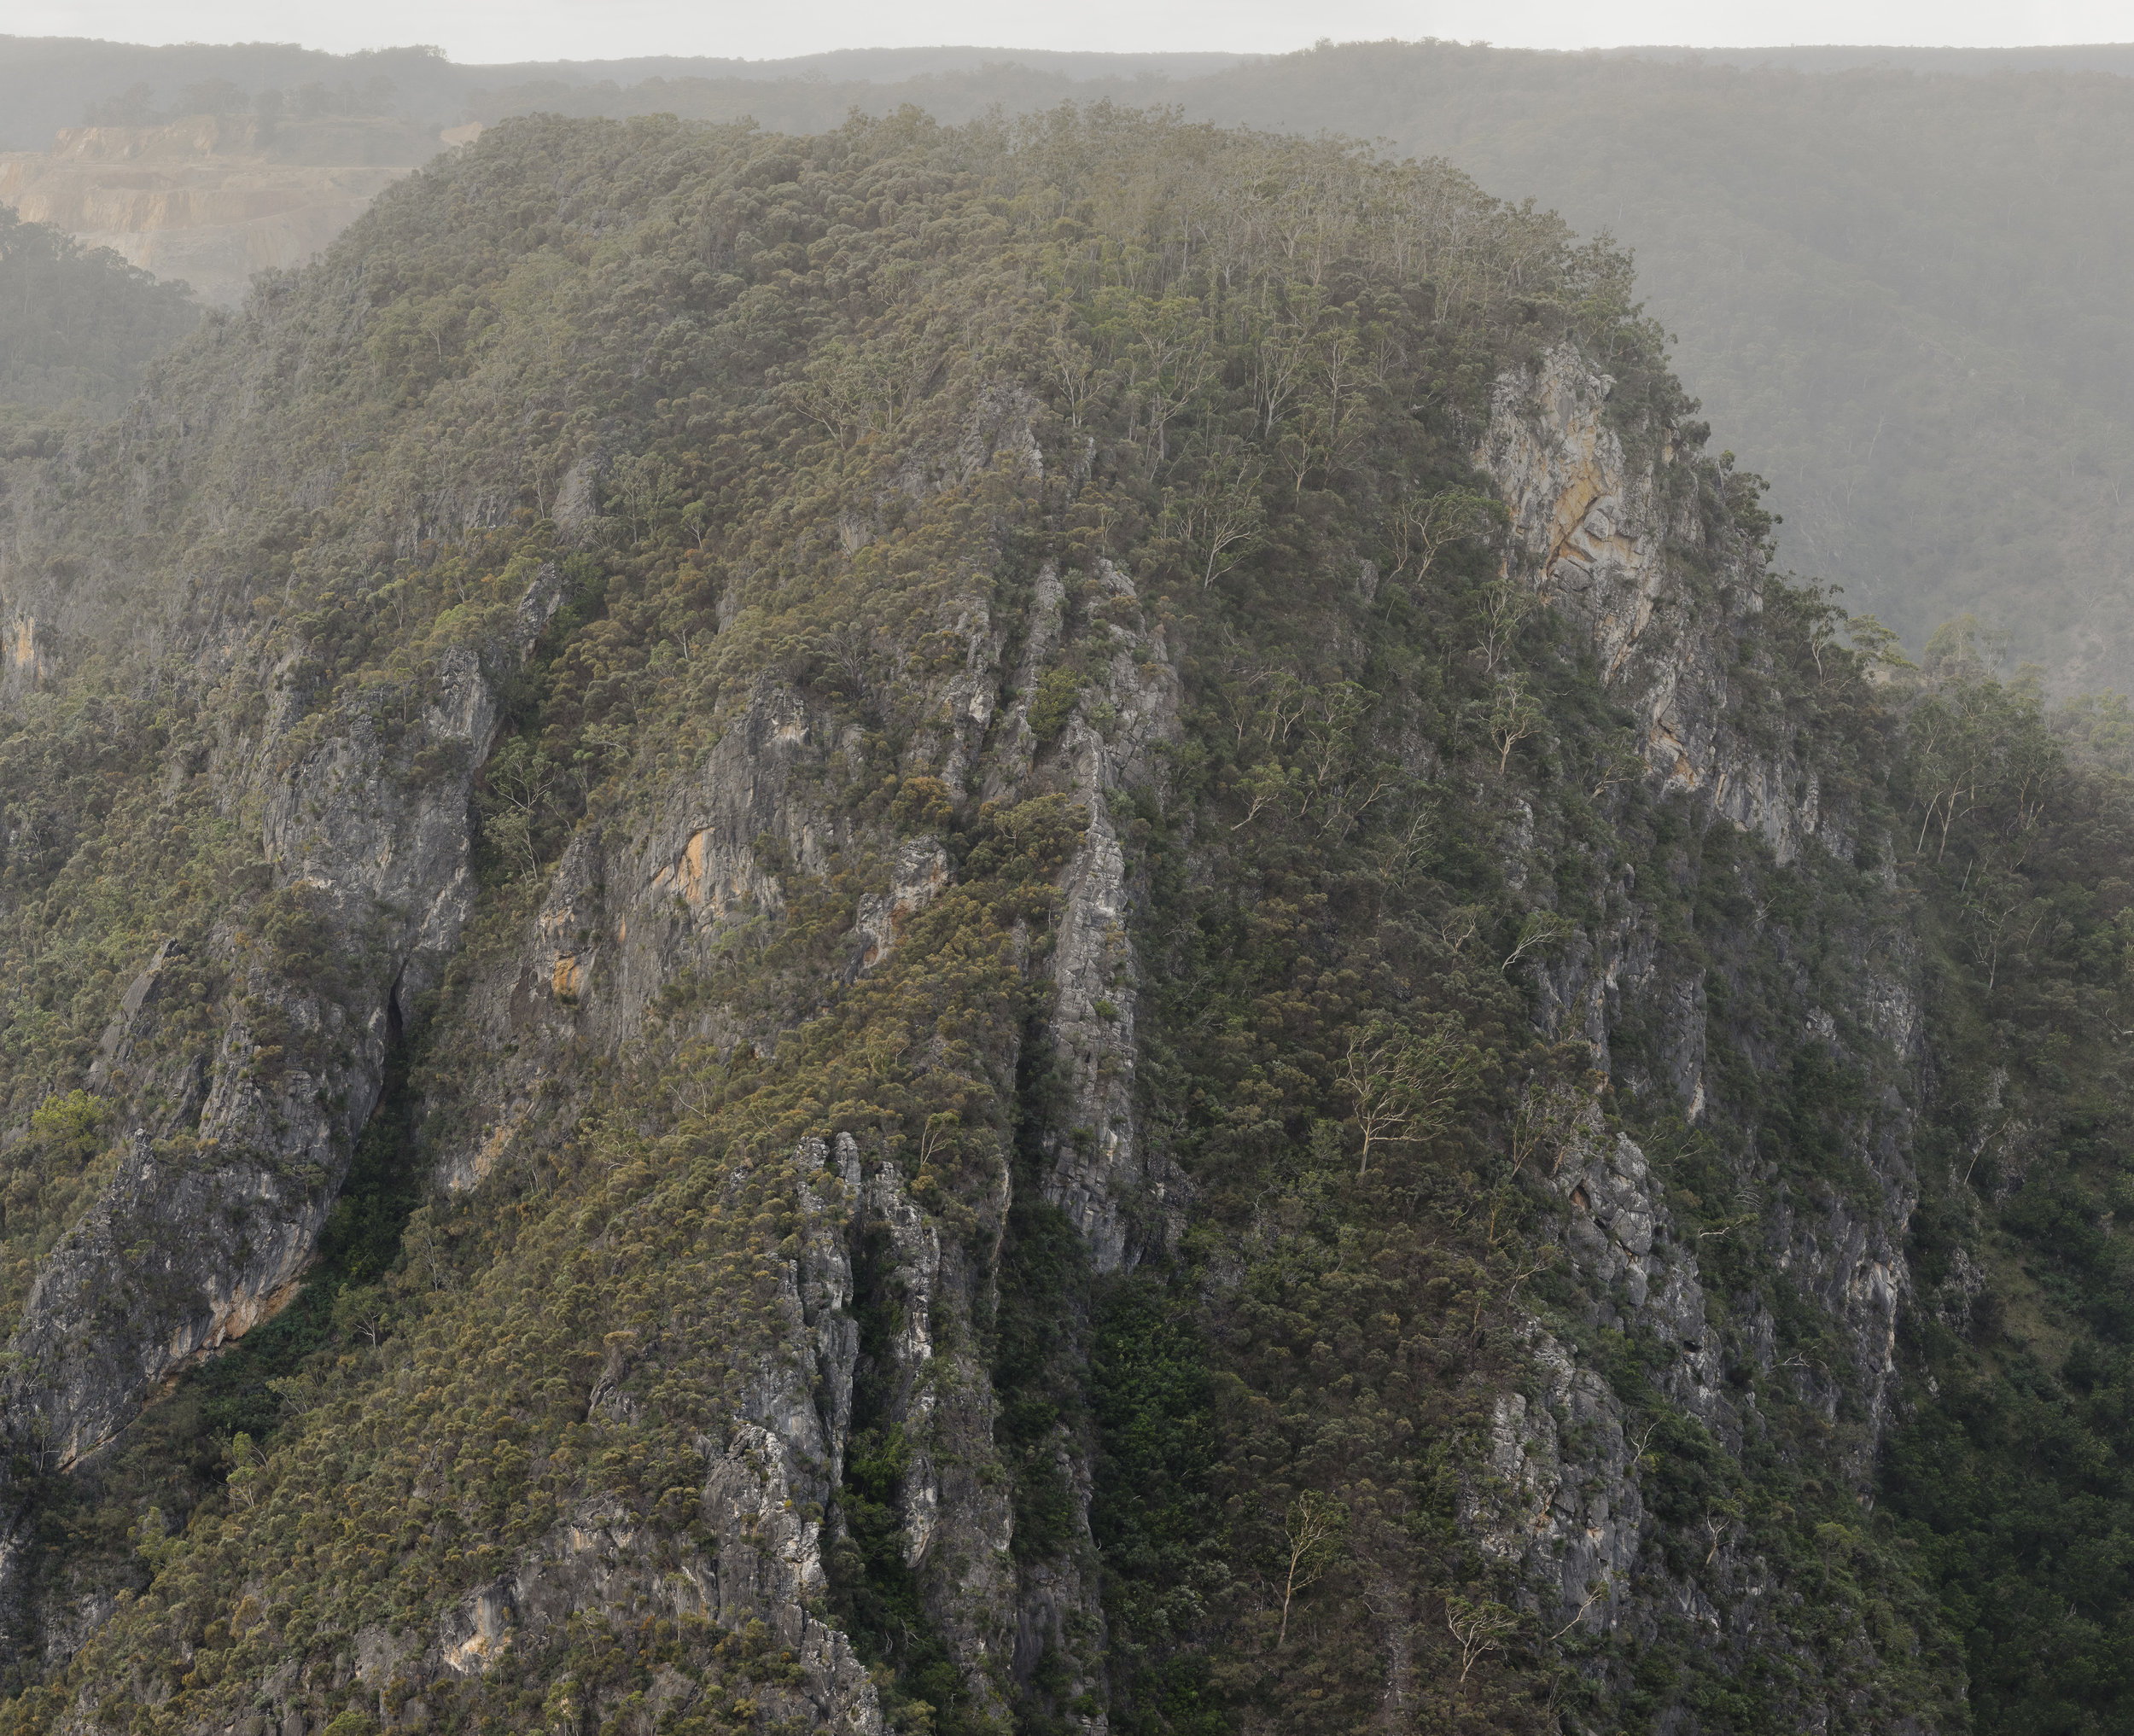 The Lookdown, Bungonia (after Fan K'uan), diptych.